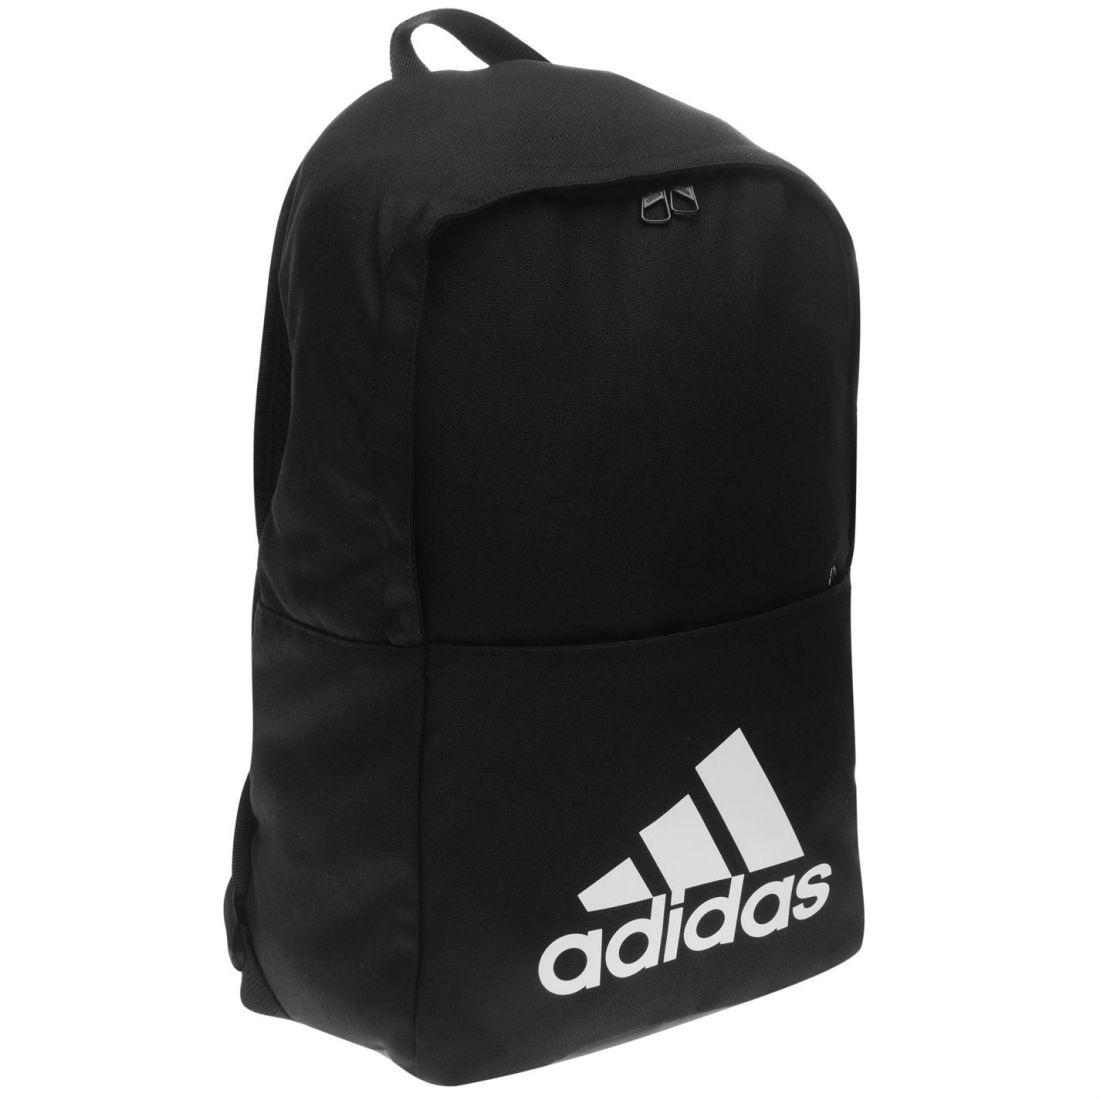 a997dc560b adidas Bag Training Classic Backpack Gym School Black Work out ...